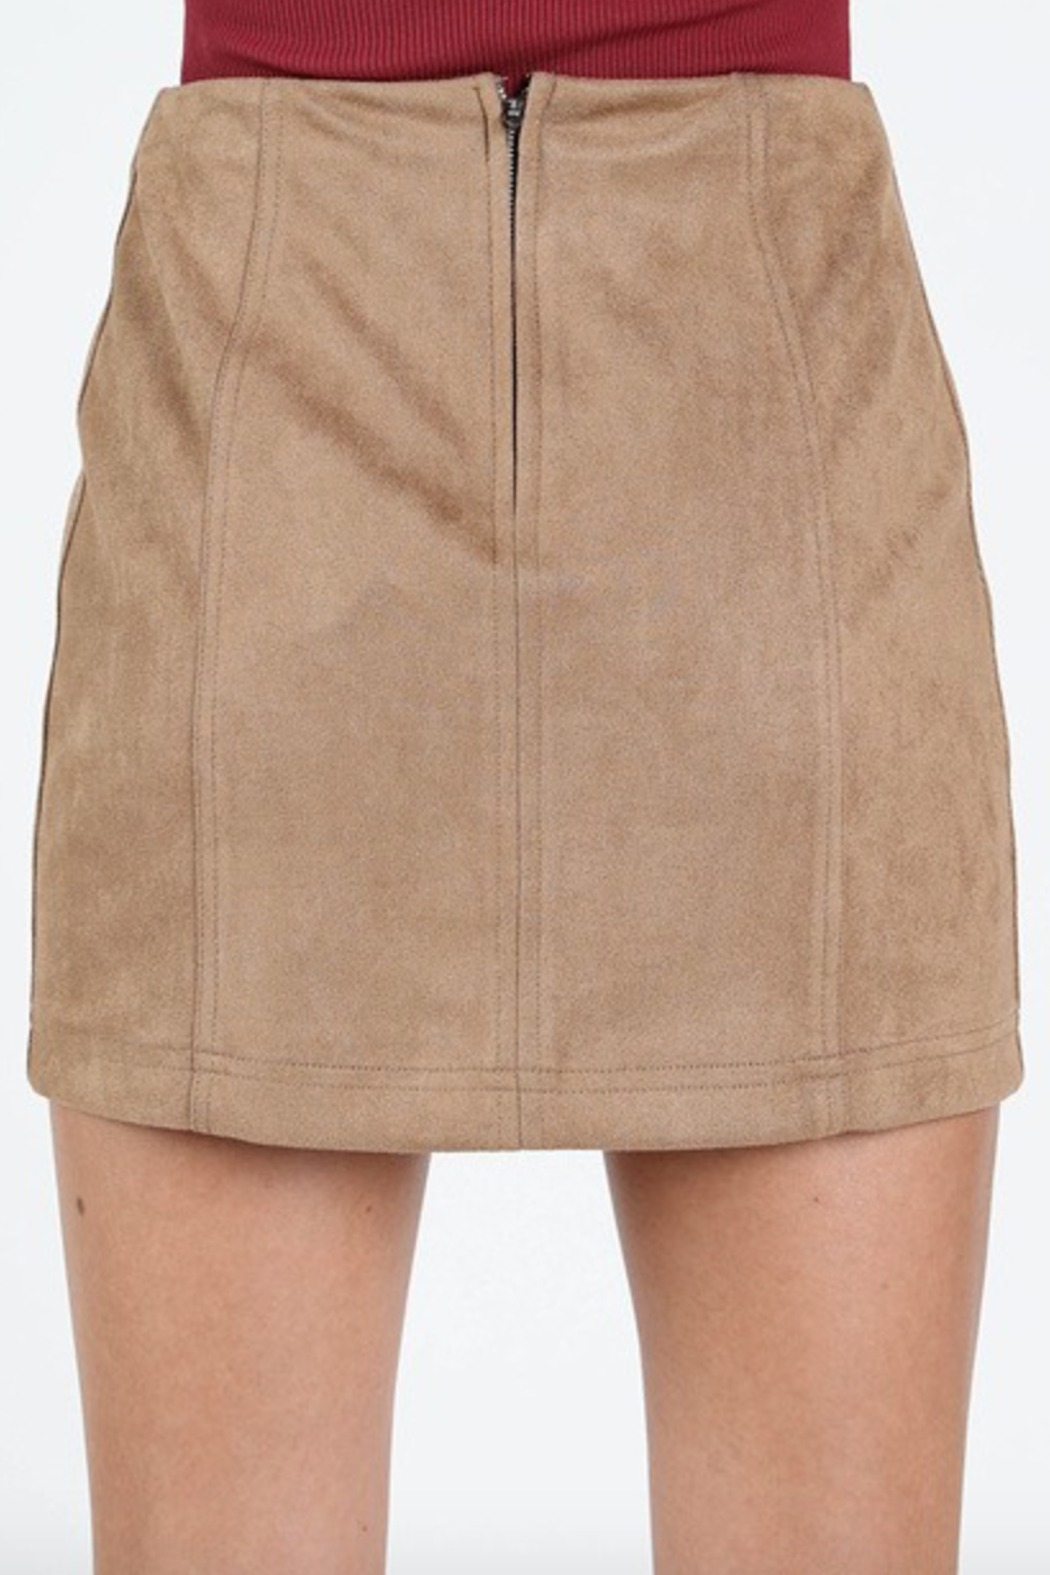 Honey Punch Suede Mini Skirt - Side Cropped Image